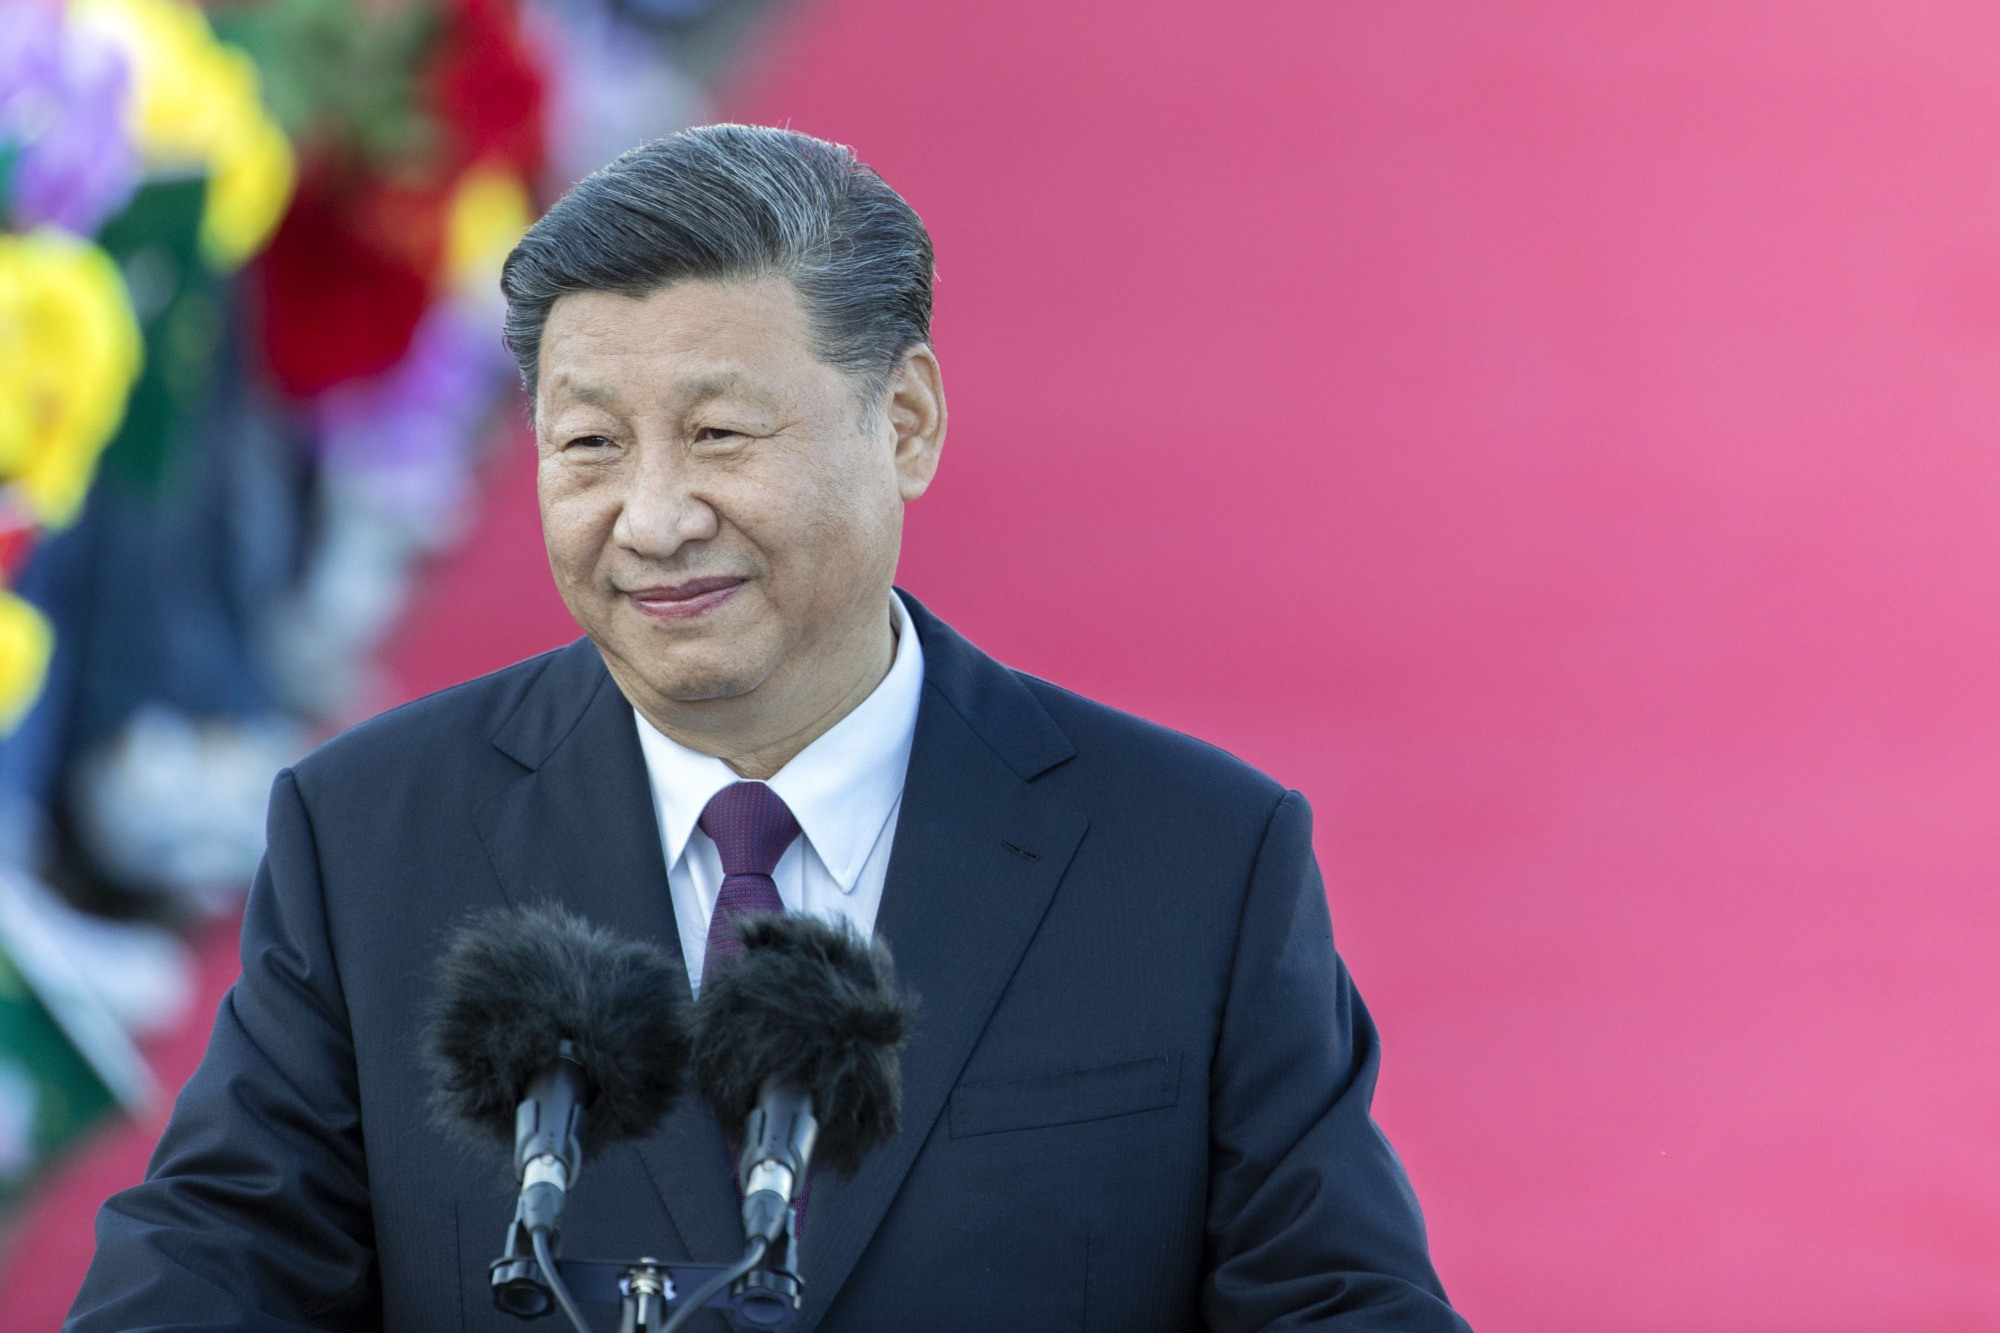 Chinese leader Xi Jinping delivers a speech in Macao in December. | BLOOMBERG